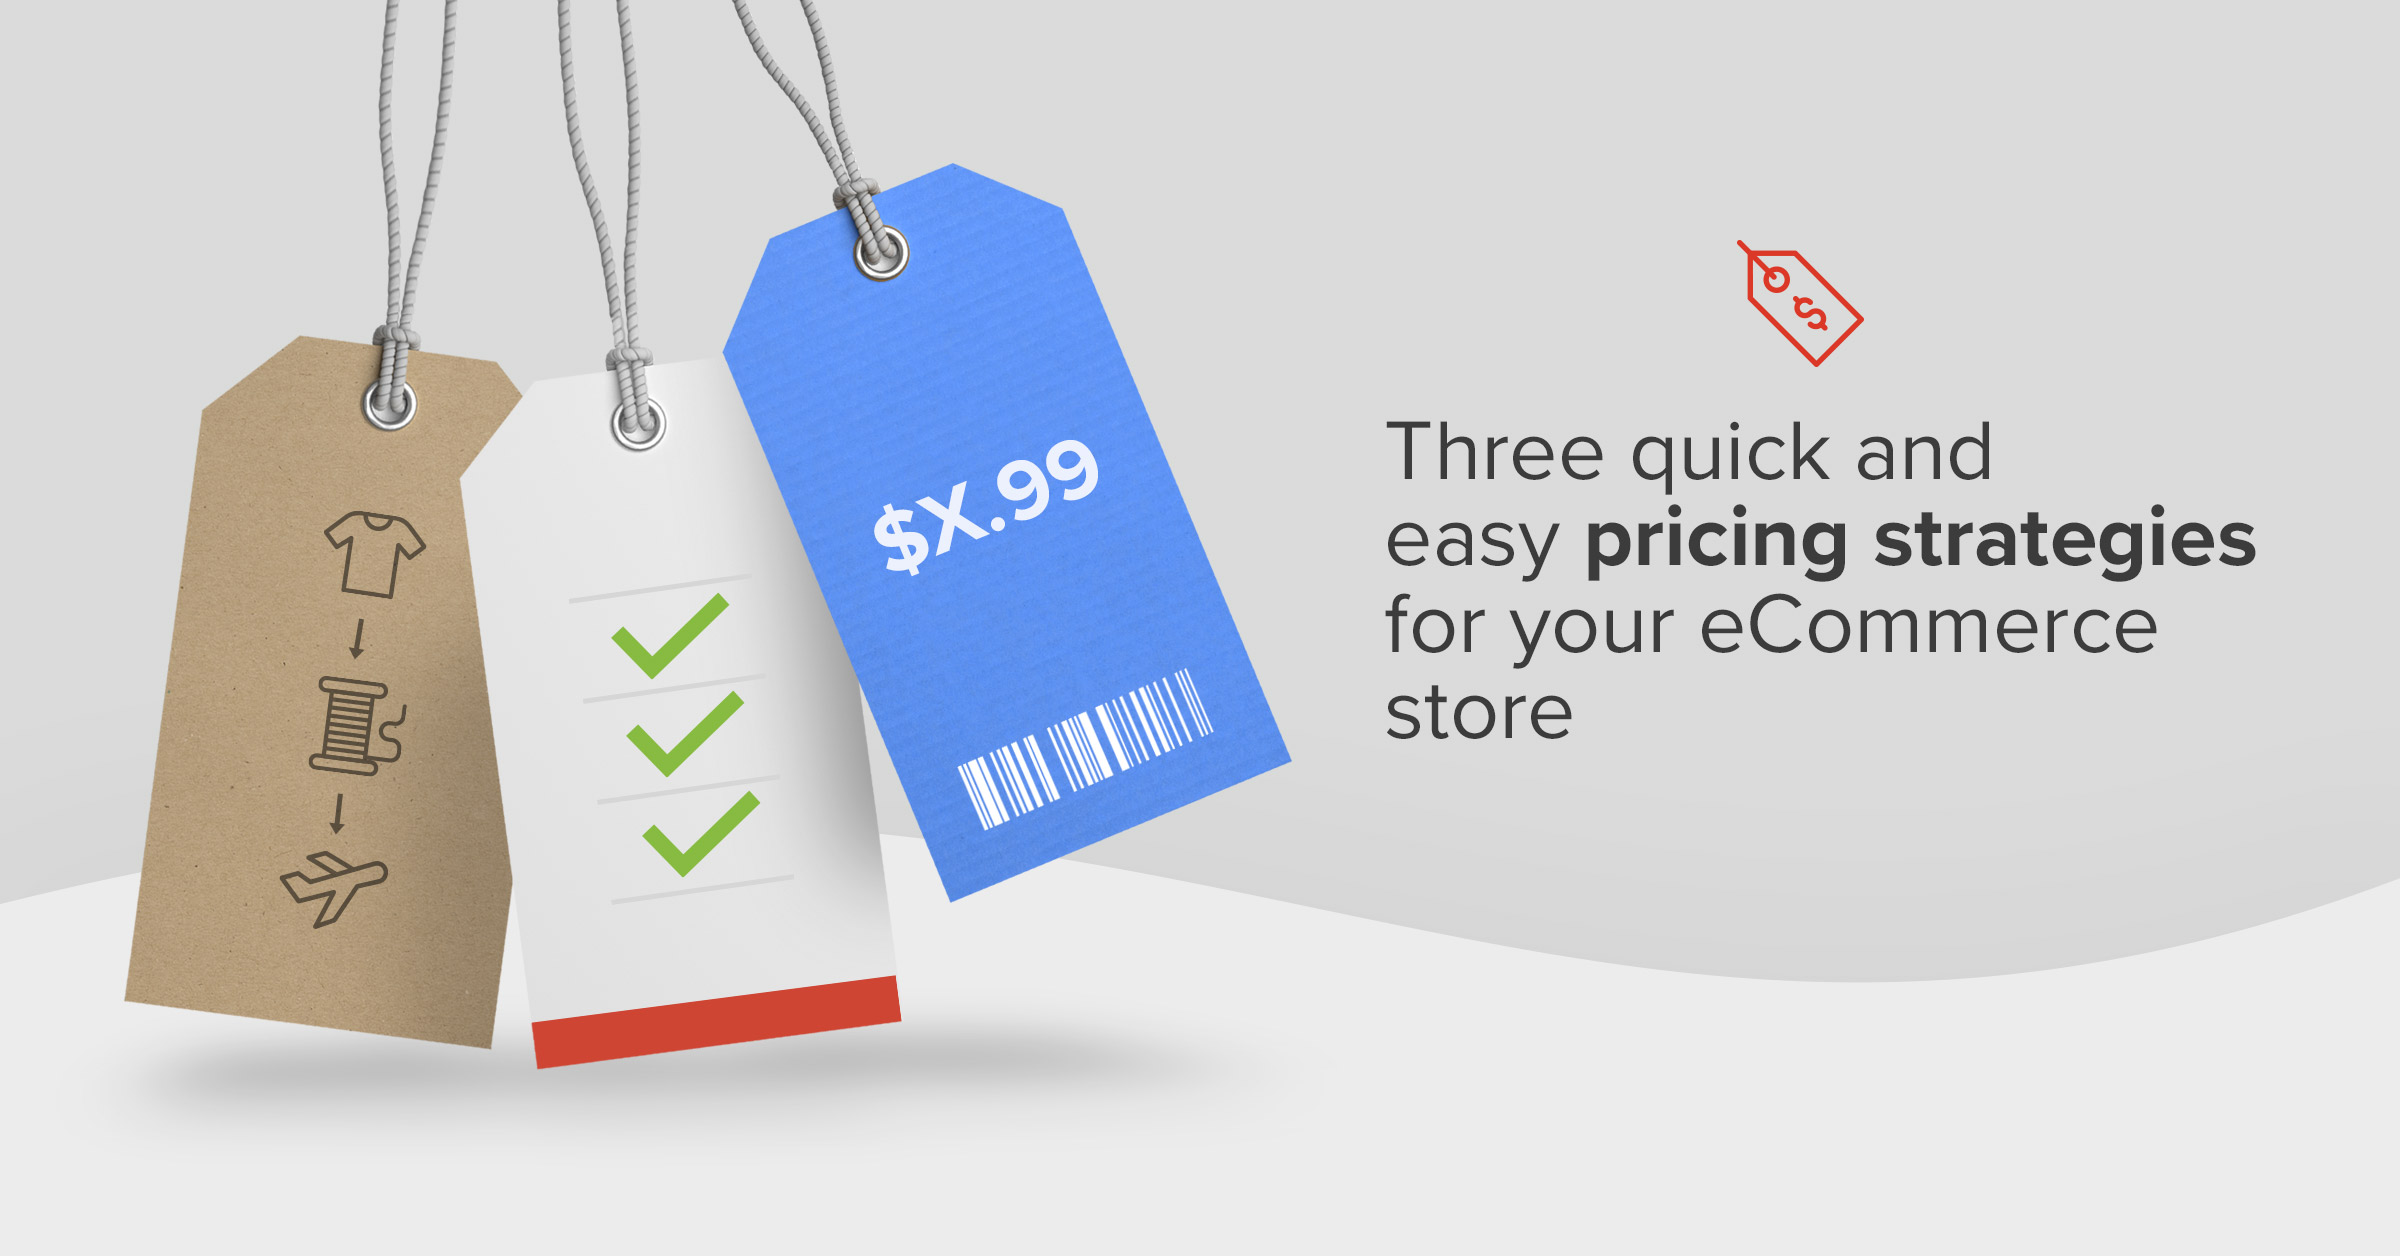 bold-blog-three-quick-and-easy-pricing-strategies-for-your-ecommerce-store